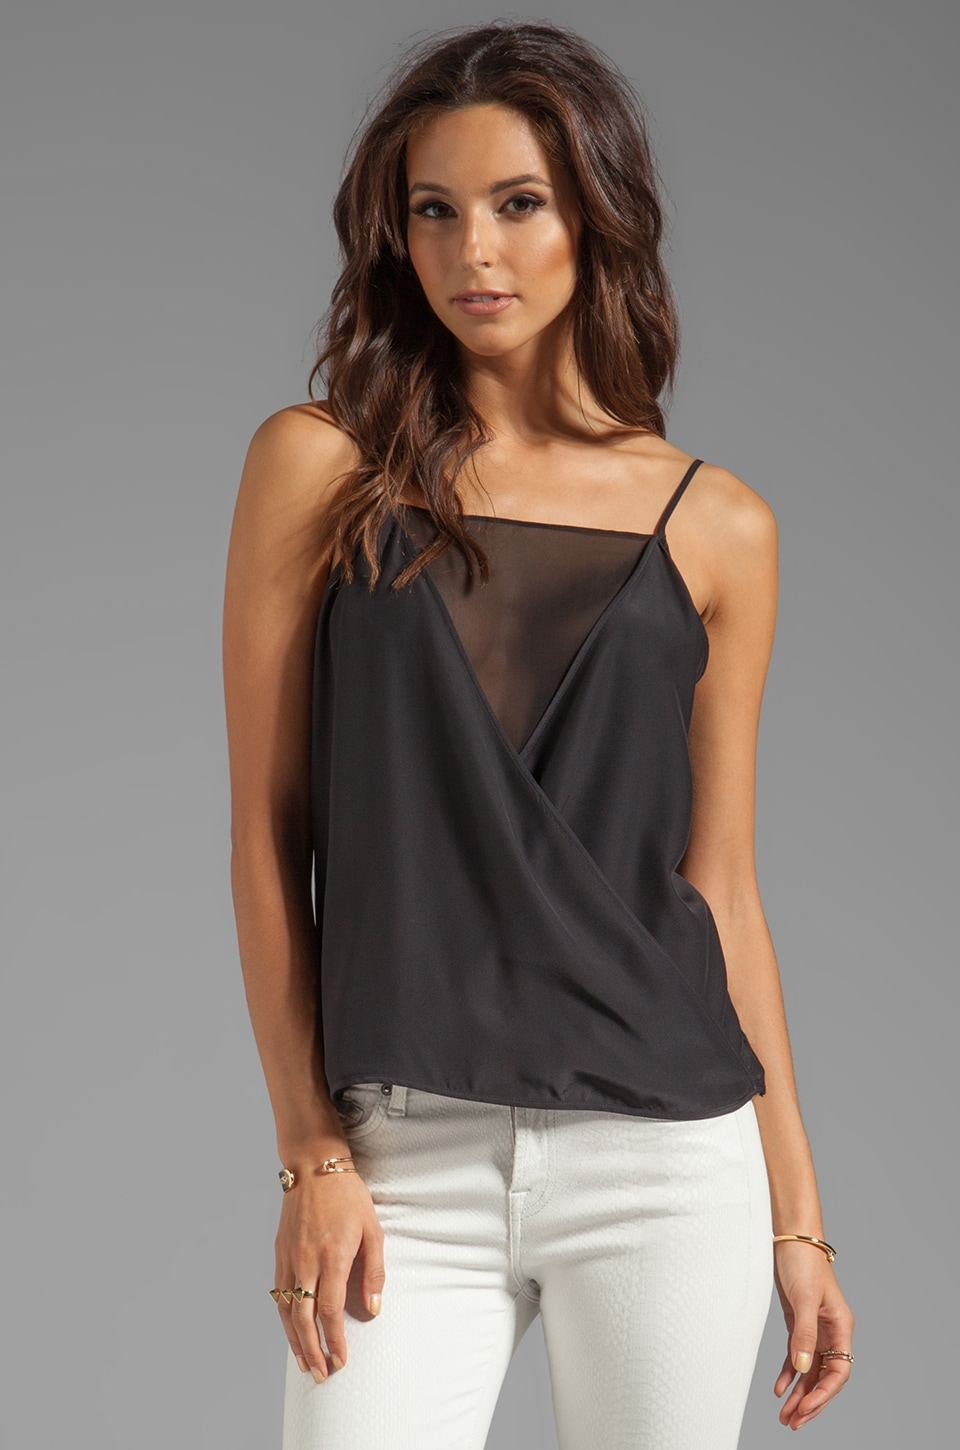 Parker Martinique Sheer Top in Black